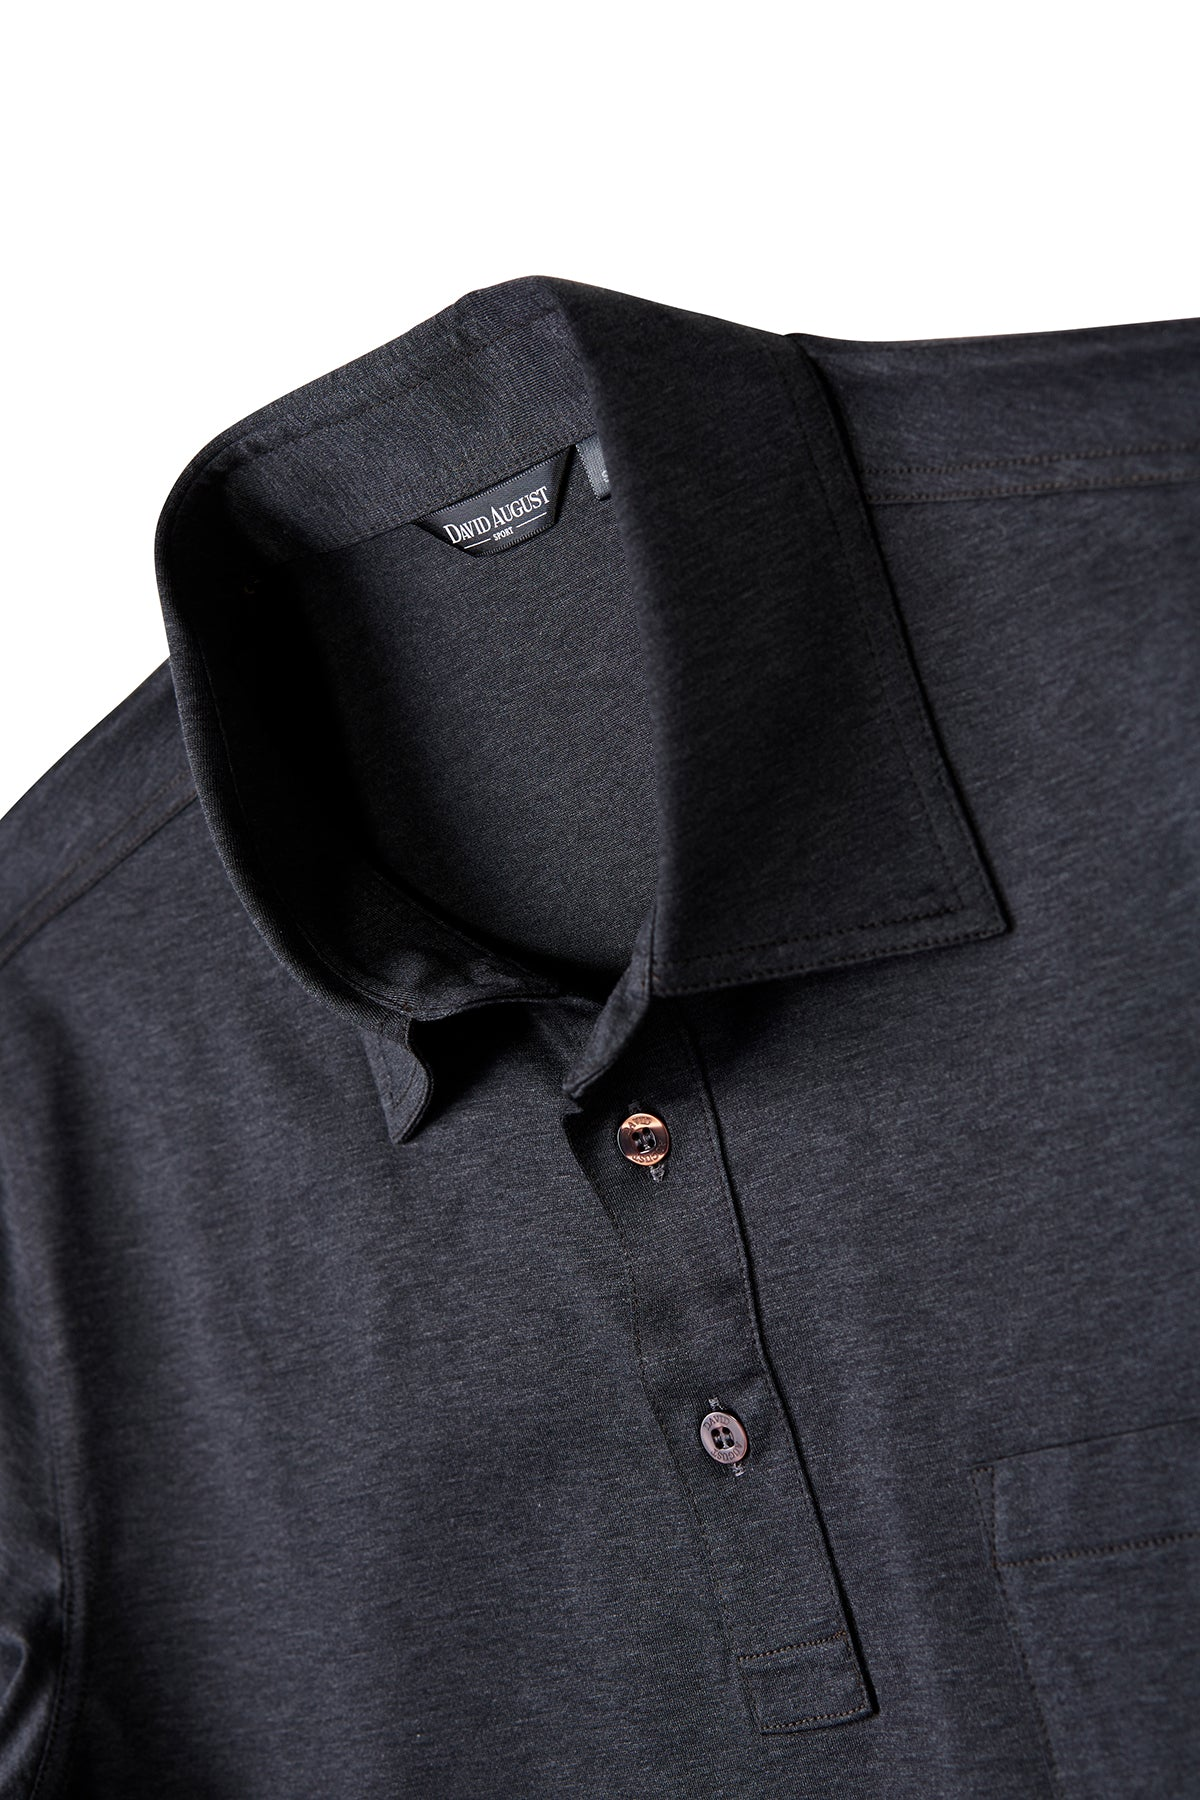 David August Charcoal Grey Polo